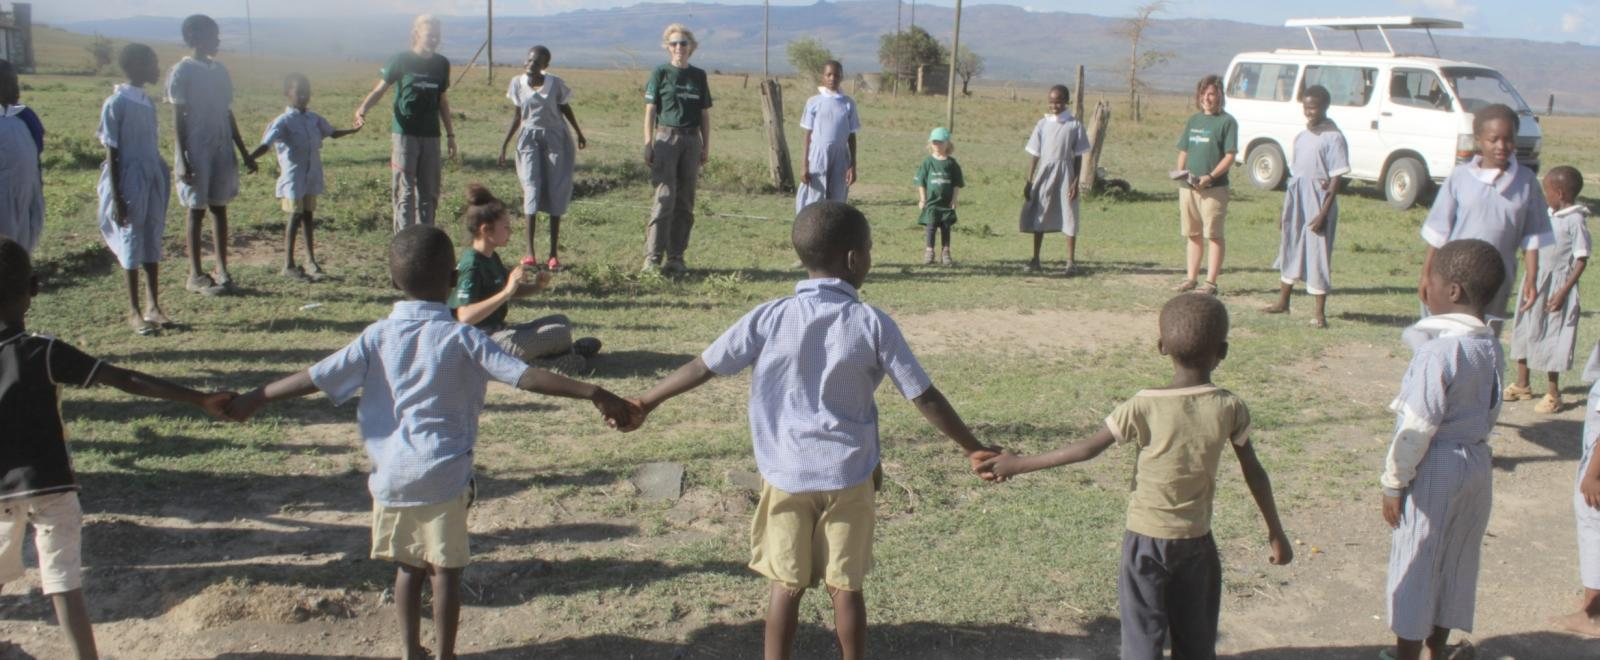 A family volunteering abroad together help run a fun educational activity outside for Kenyan school children.